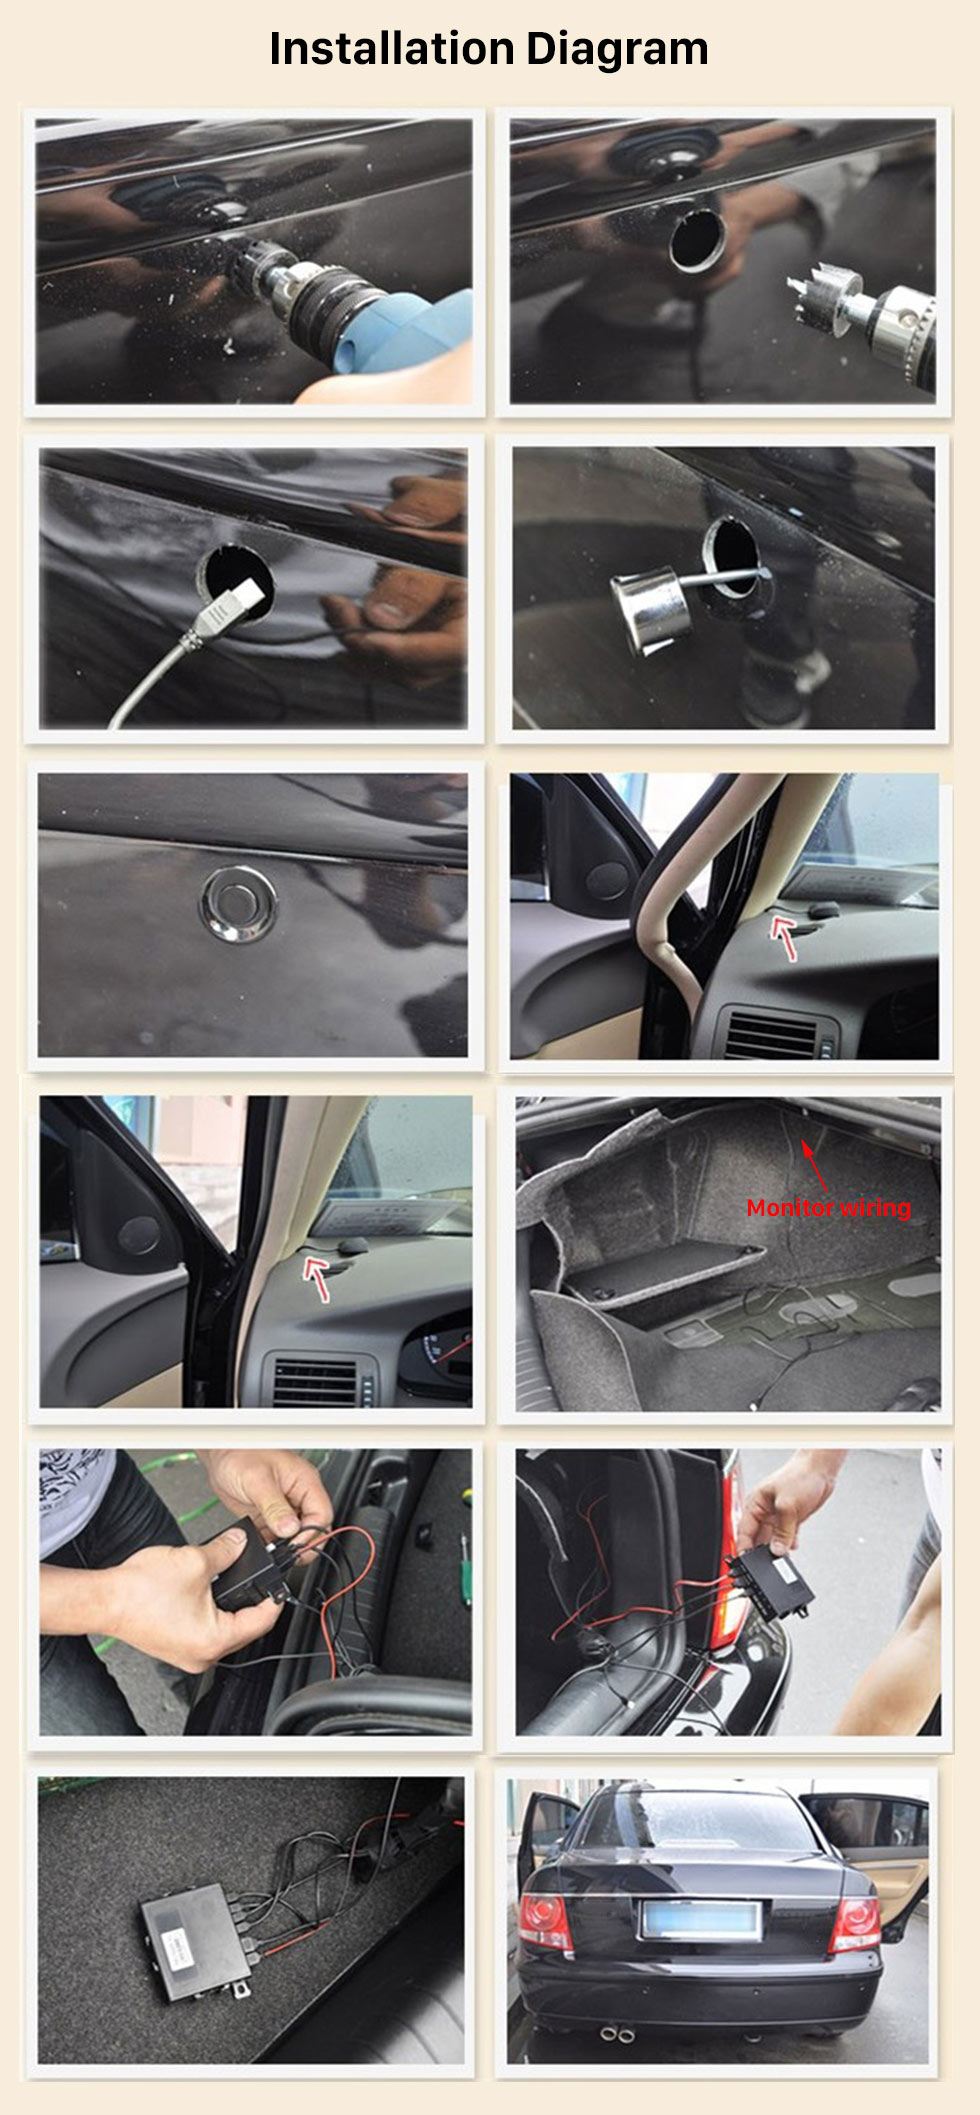 Installation Diagram Car Universal Parking Assistance System Reverse Sensor with Visual LED Monitor 4 Parking Sensor Reversing System